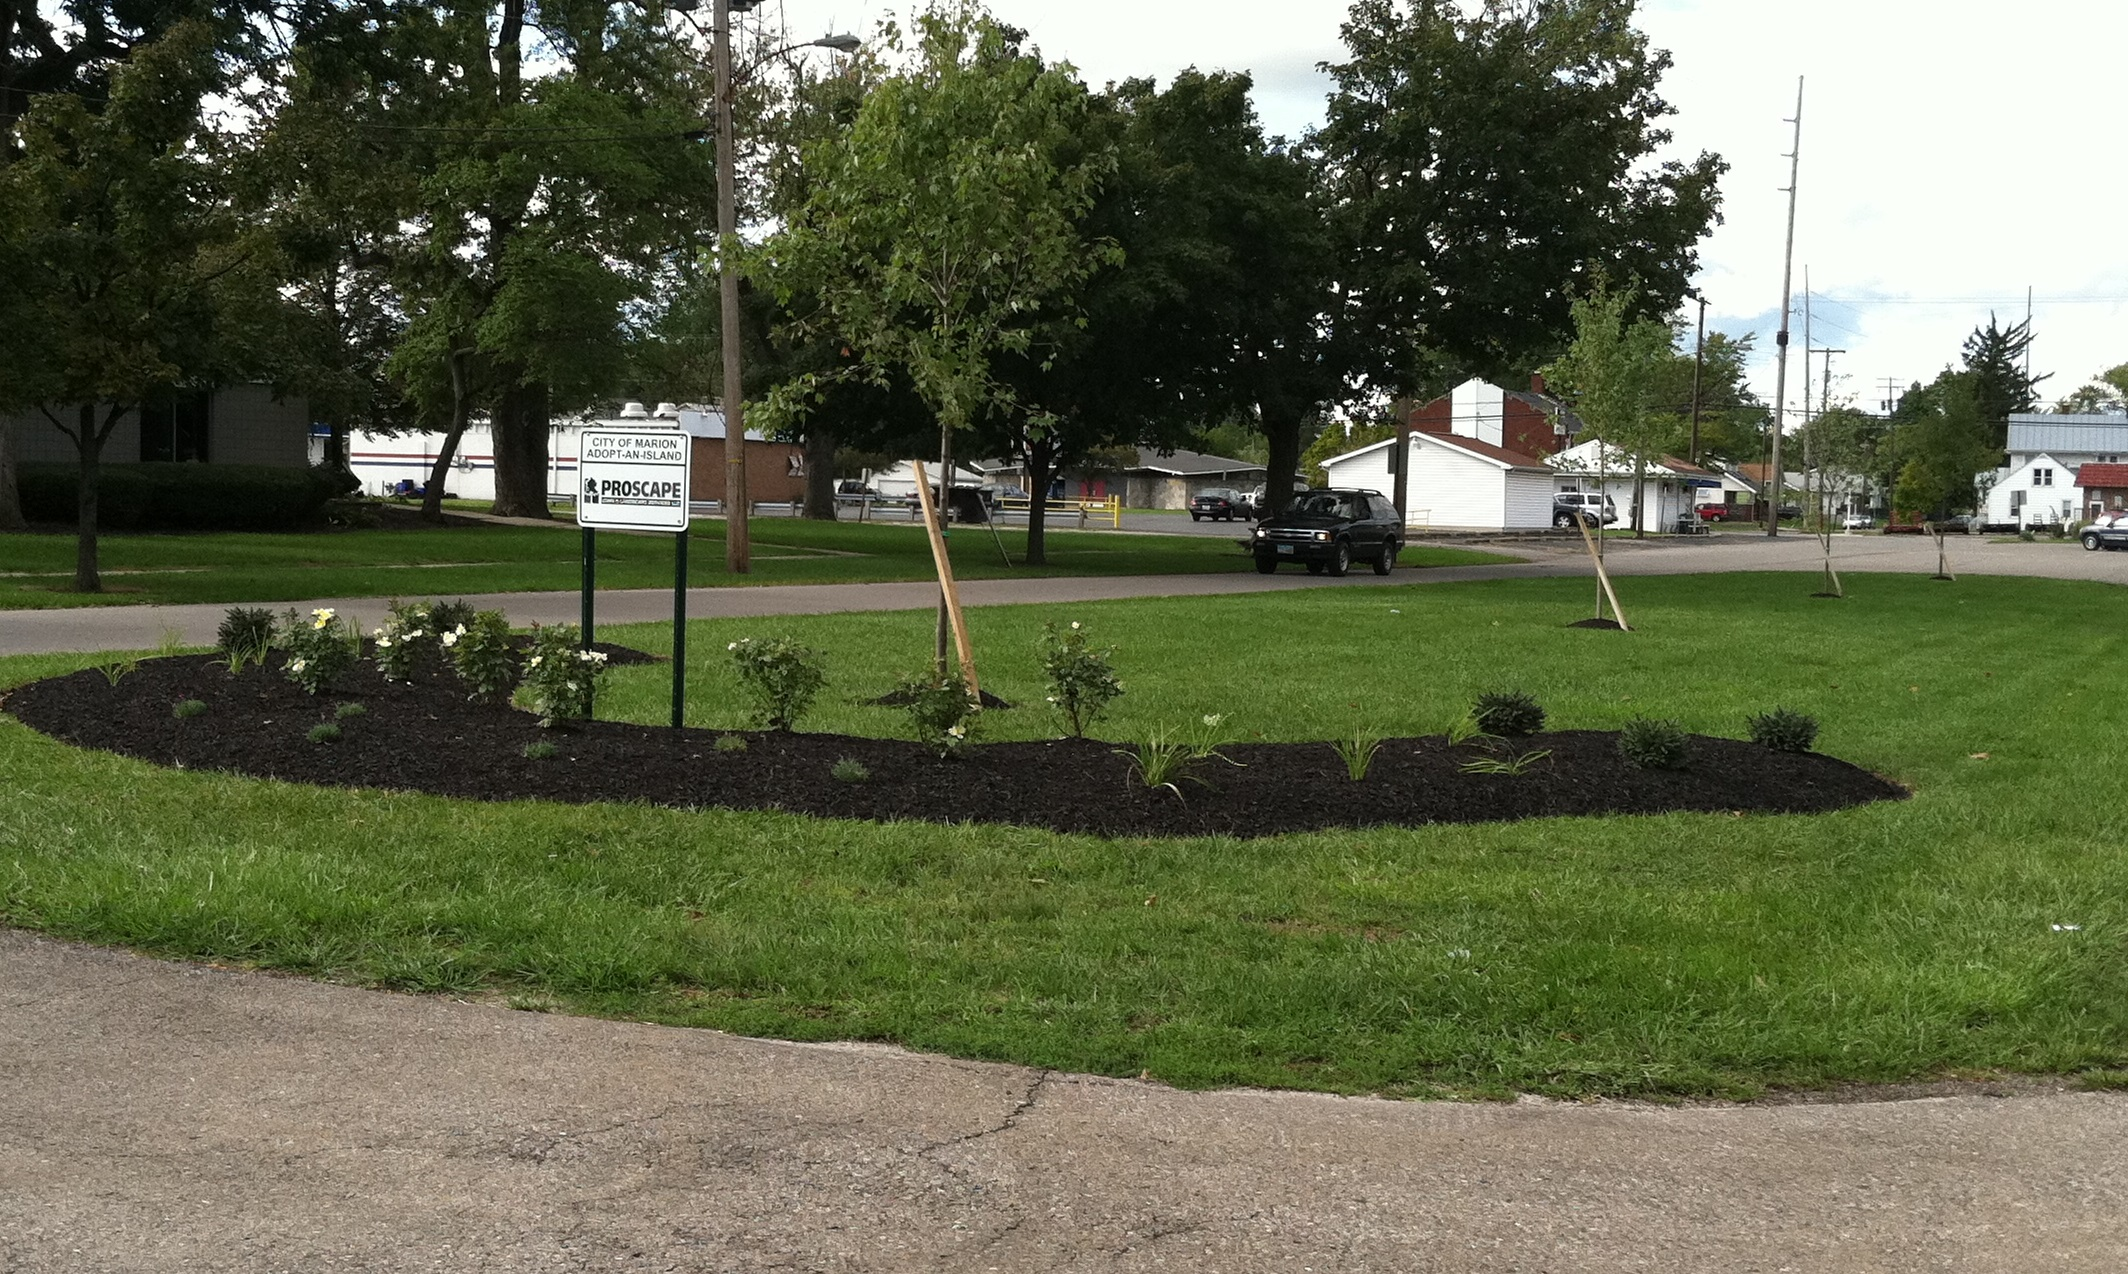 Adopt an Island Landscaping Marion